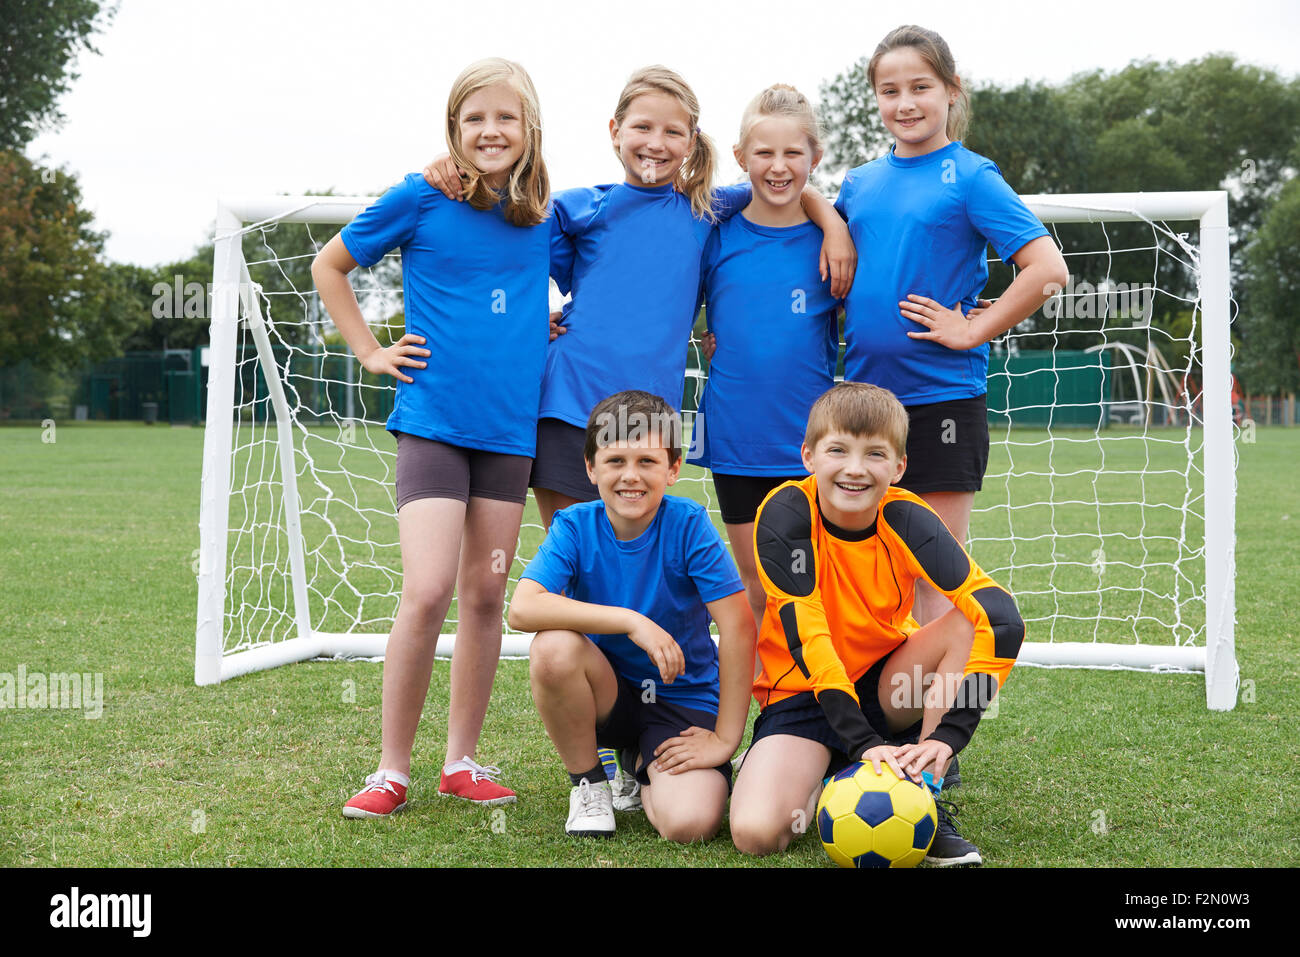 Boys And Girls In Elementary School Soccer Team - Stock Image